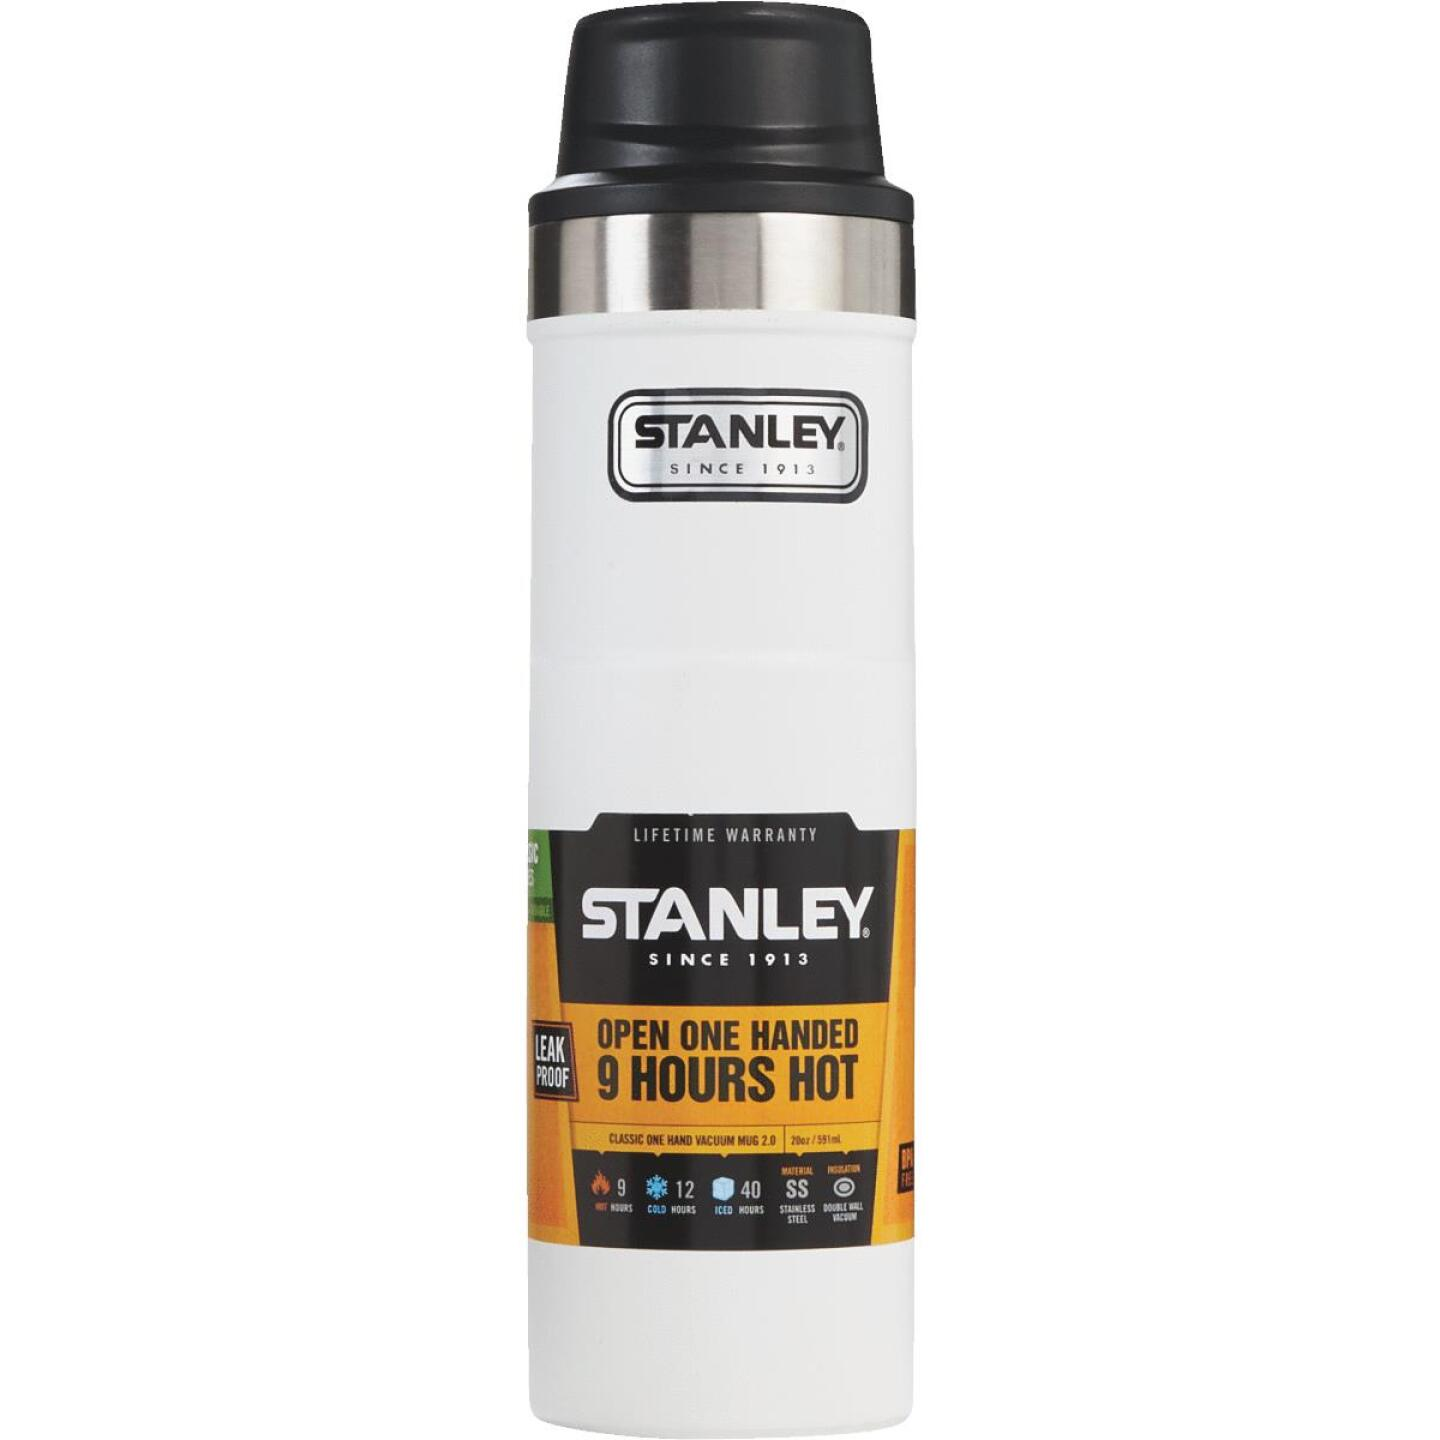 Stanley 20 Oz. Polar White Trigger Action Insulated Tumbler Image 1